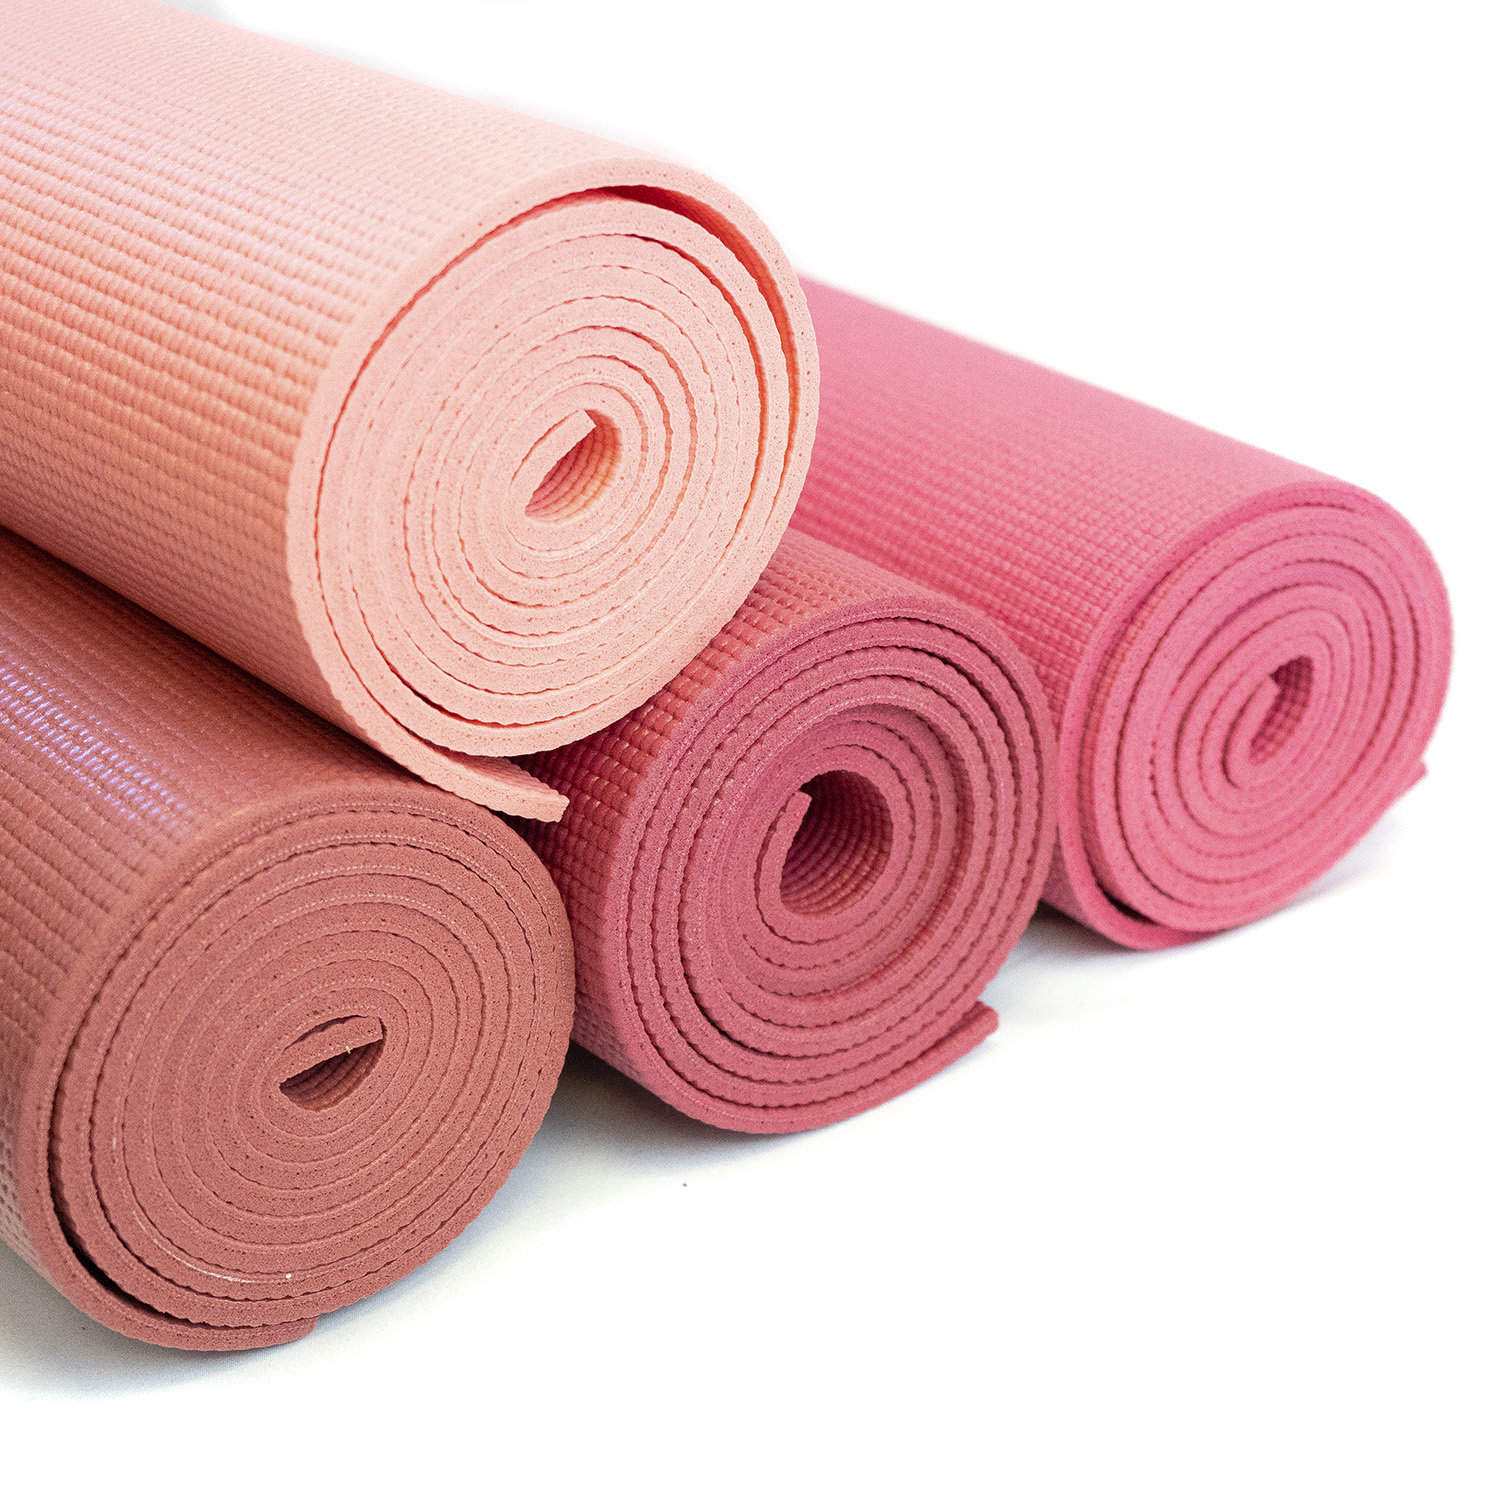 YOGA Accessories 1 4   Extra Thick Deluxe Yoga Mat  4e583338d0191